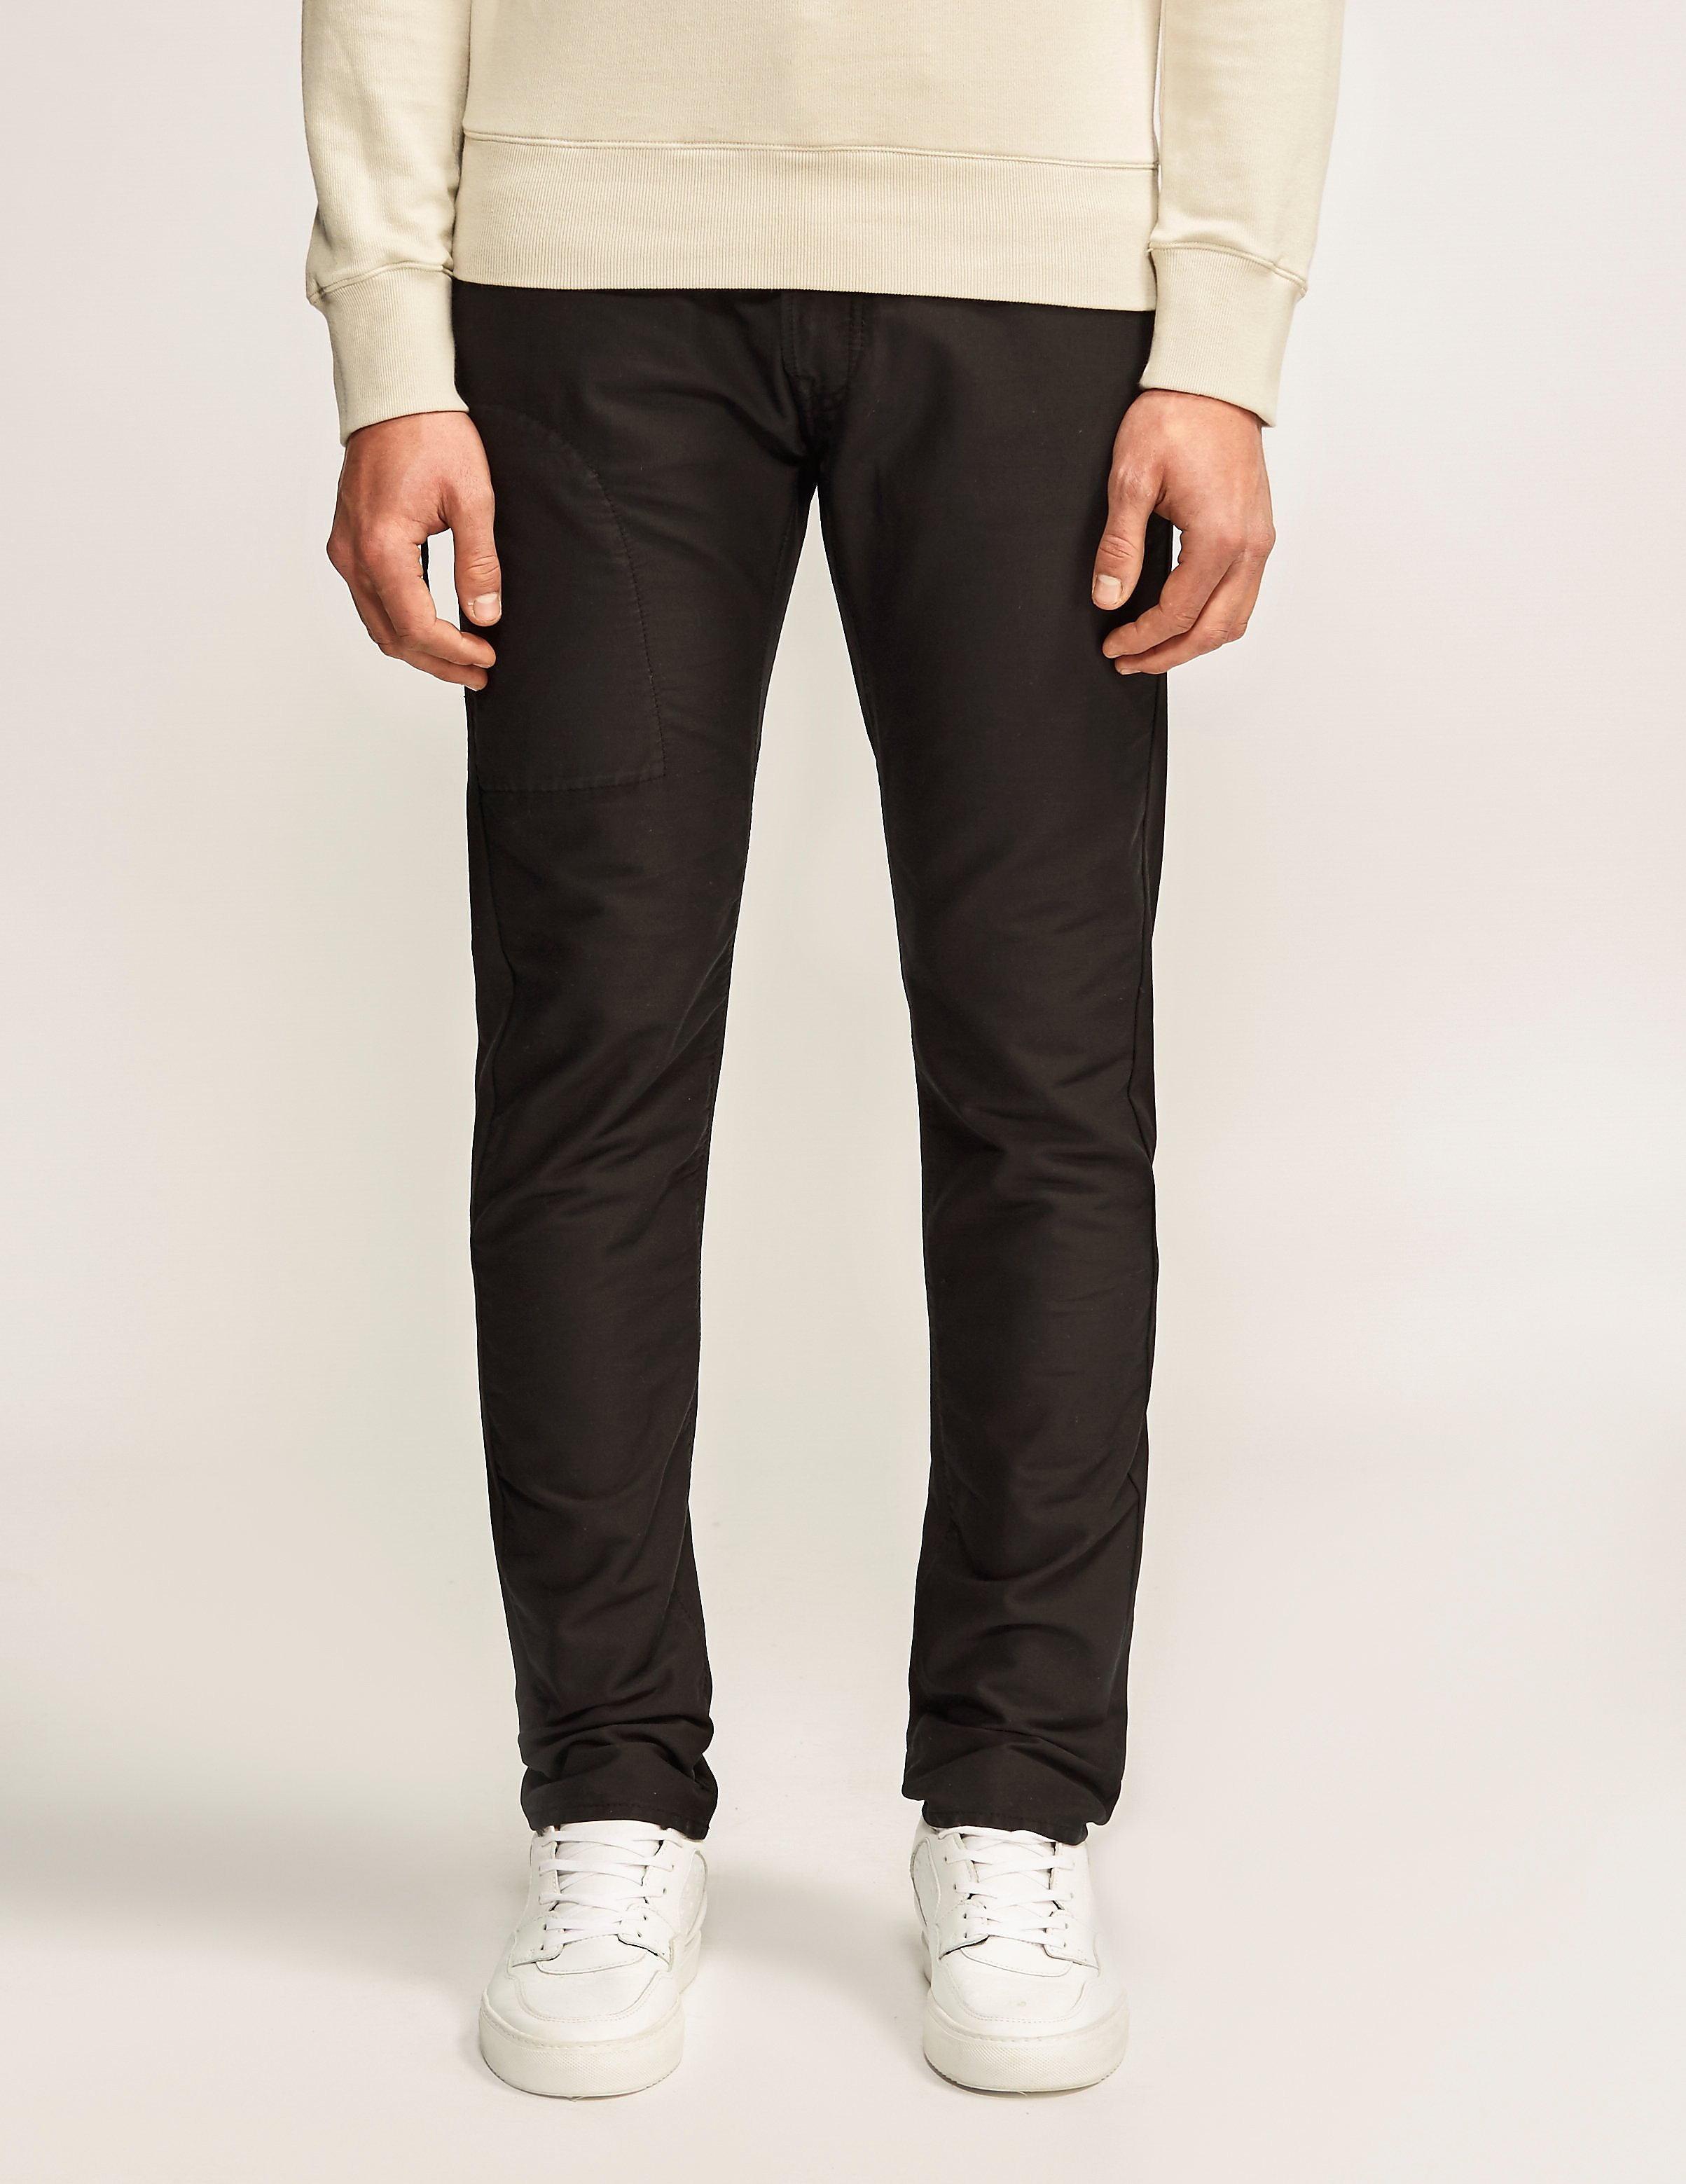 Stone Island Cycling 5 Pocket Jean